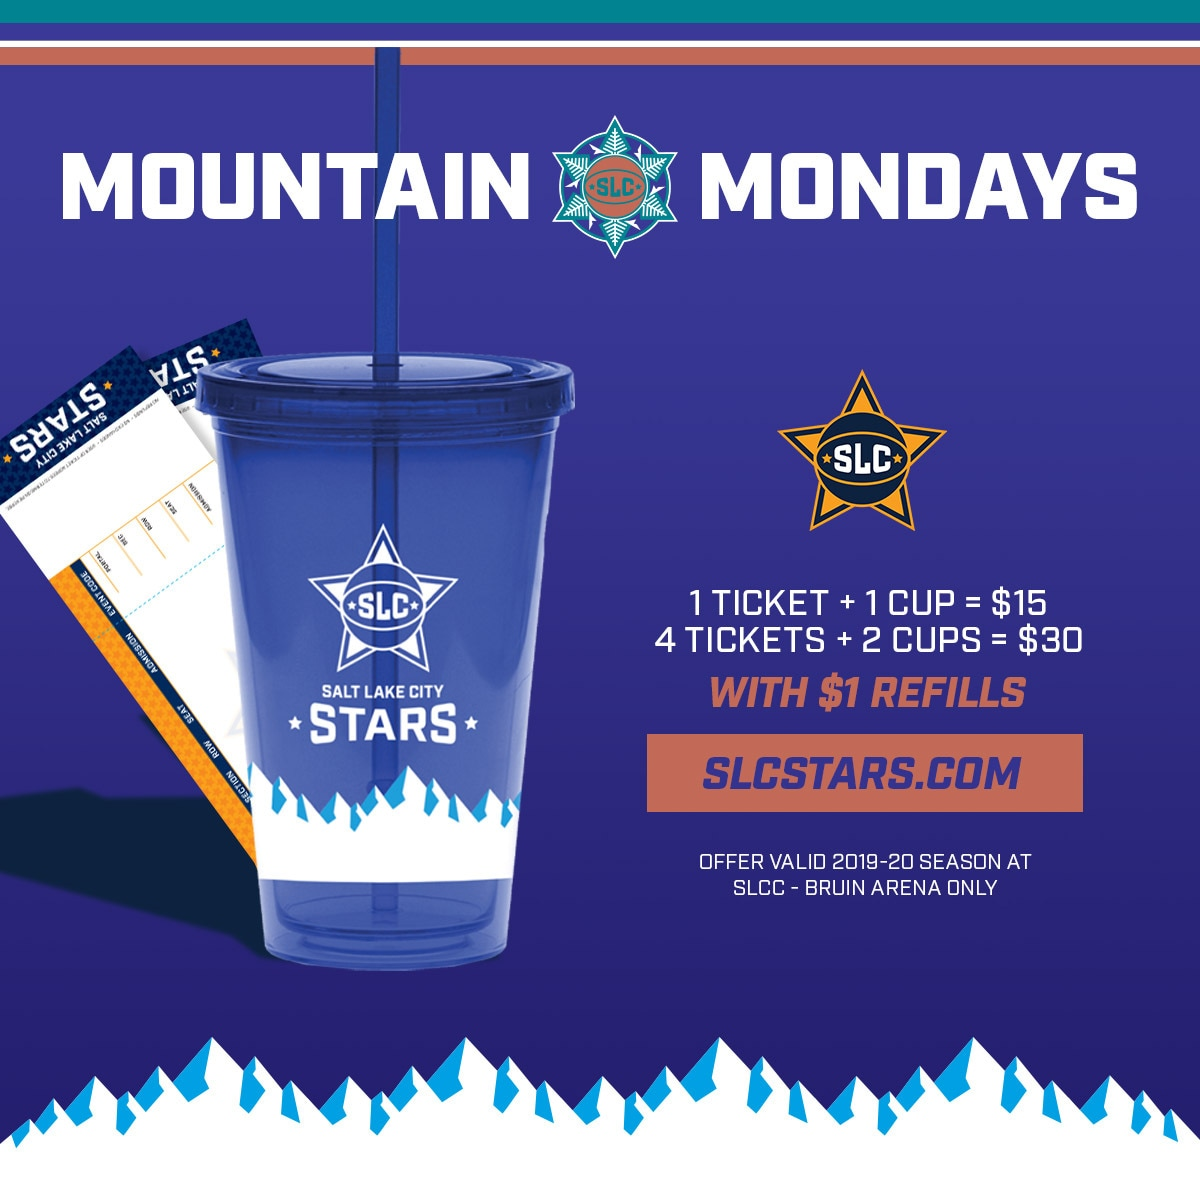 SLC Stars Mountain Mondays